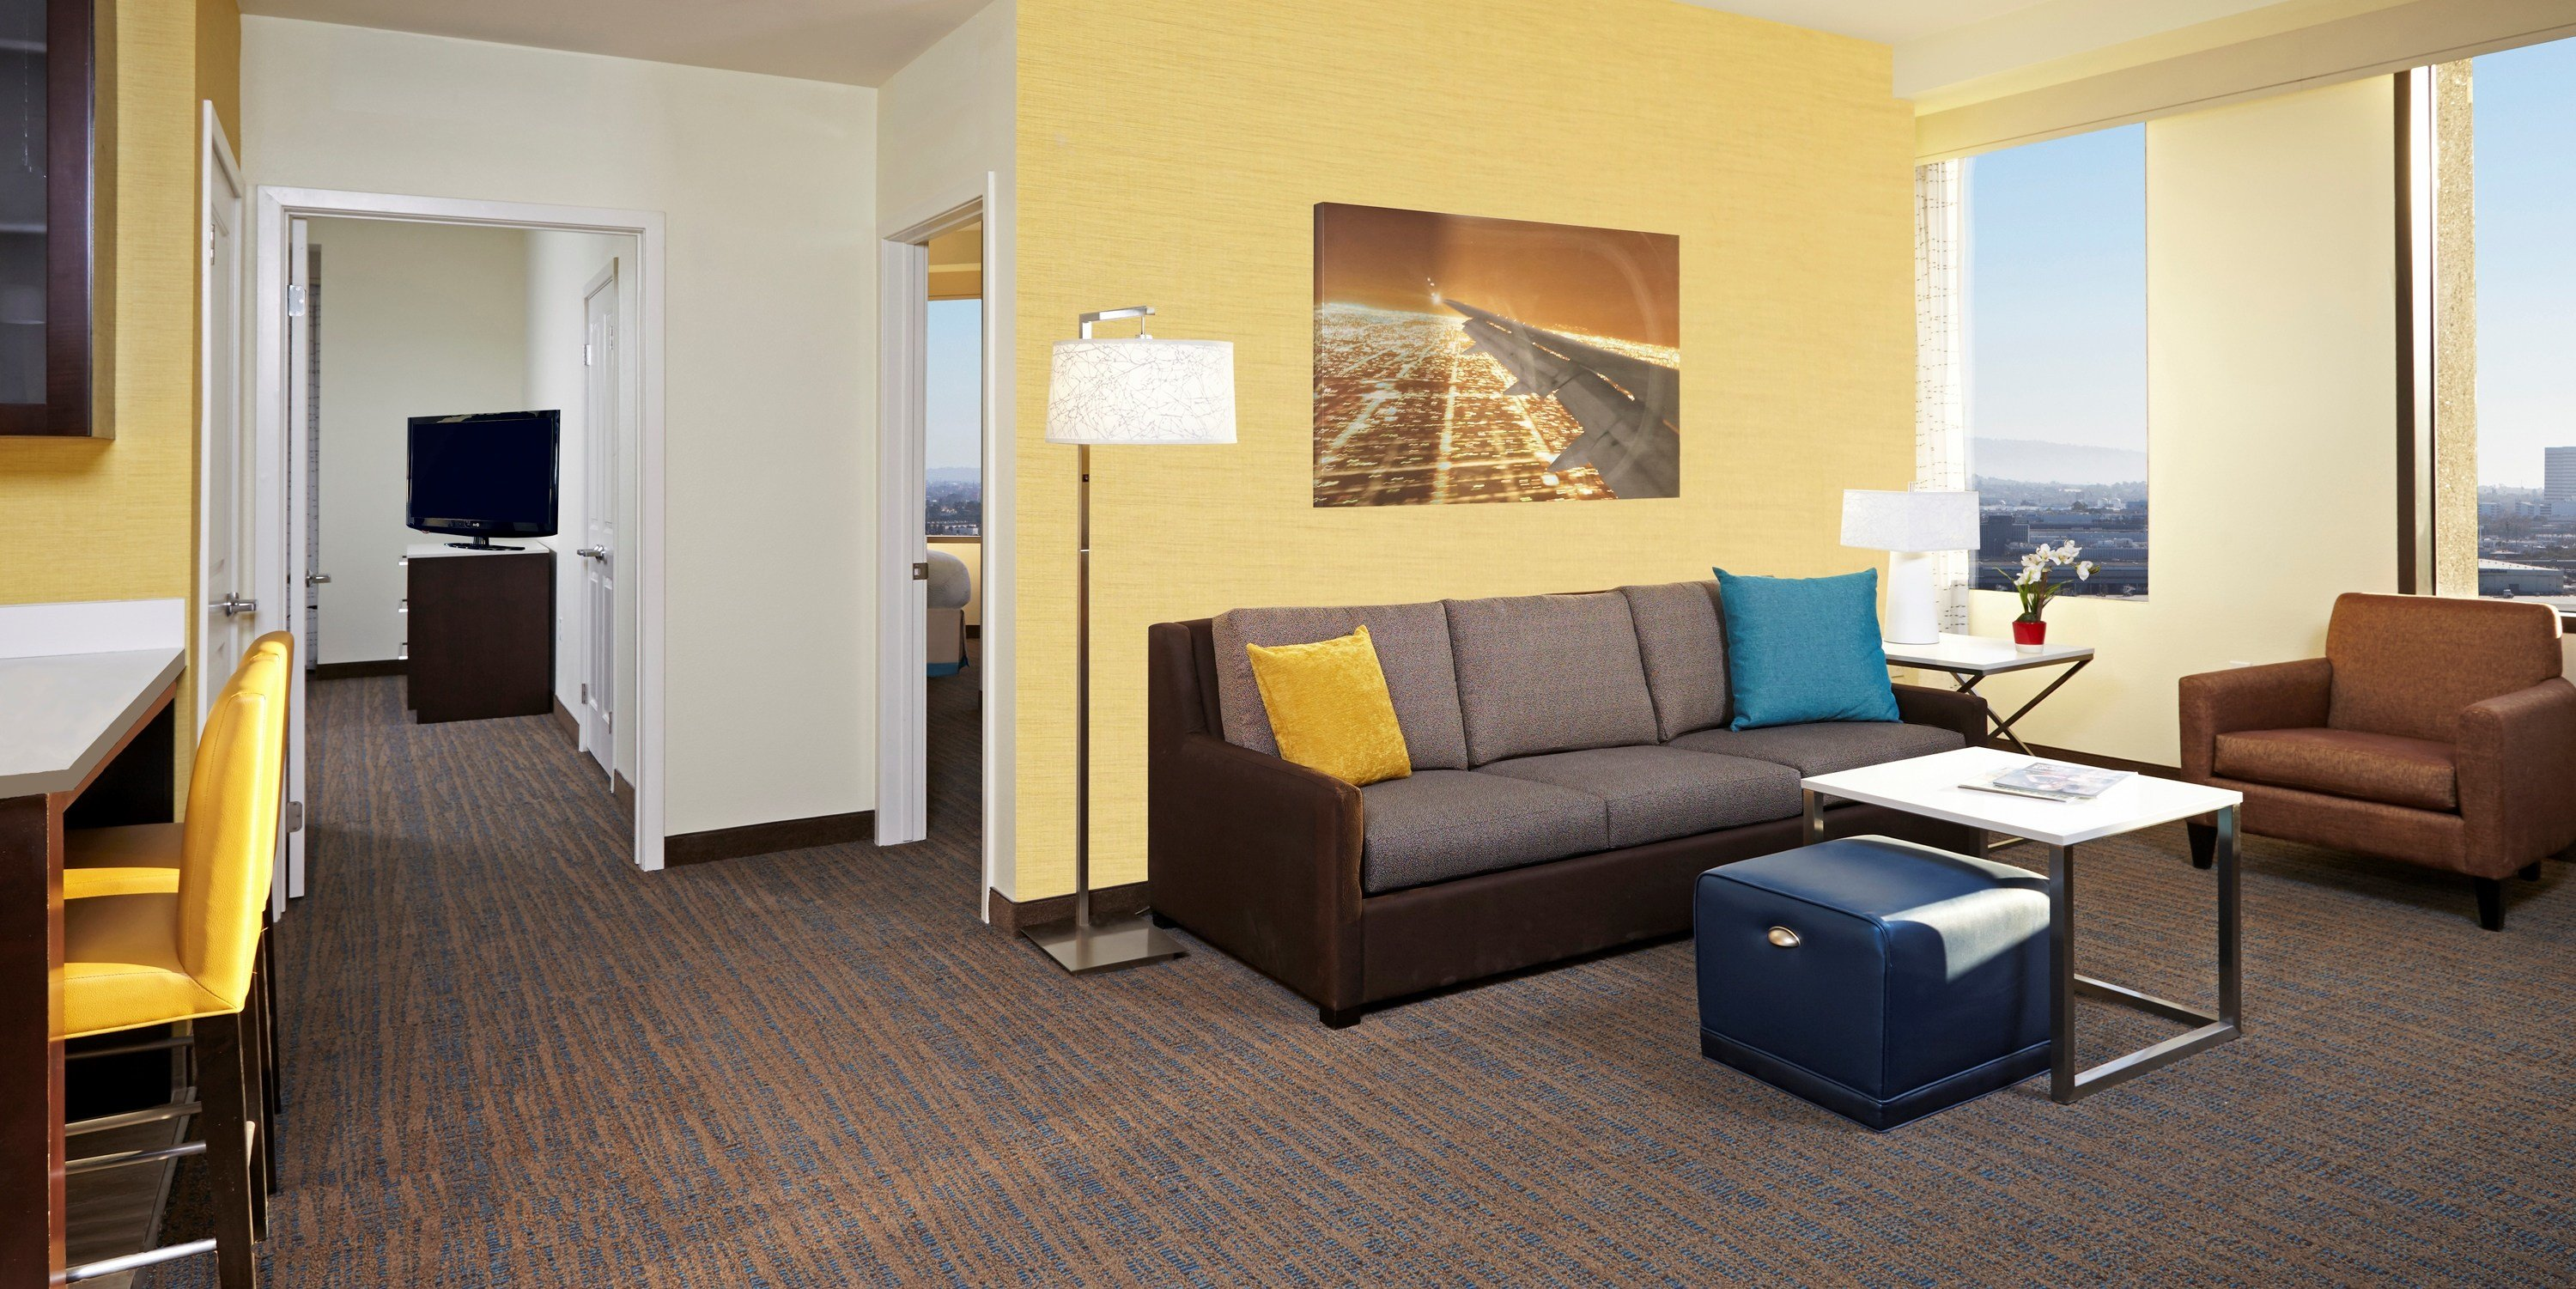 Best Hotel Lax Airport Los Angeles Suites Residence Inn With Pictures